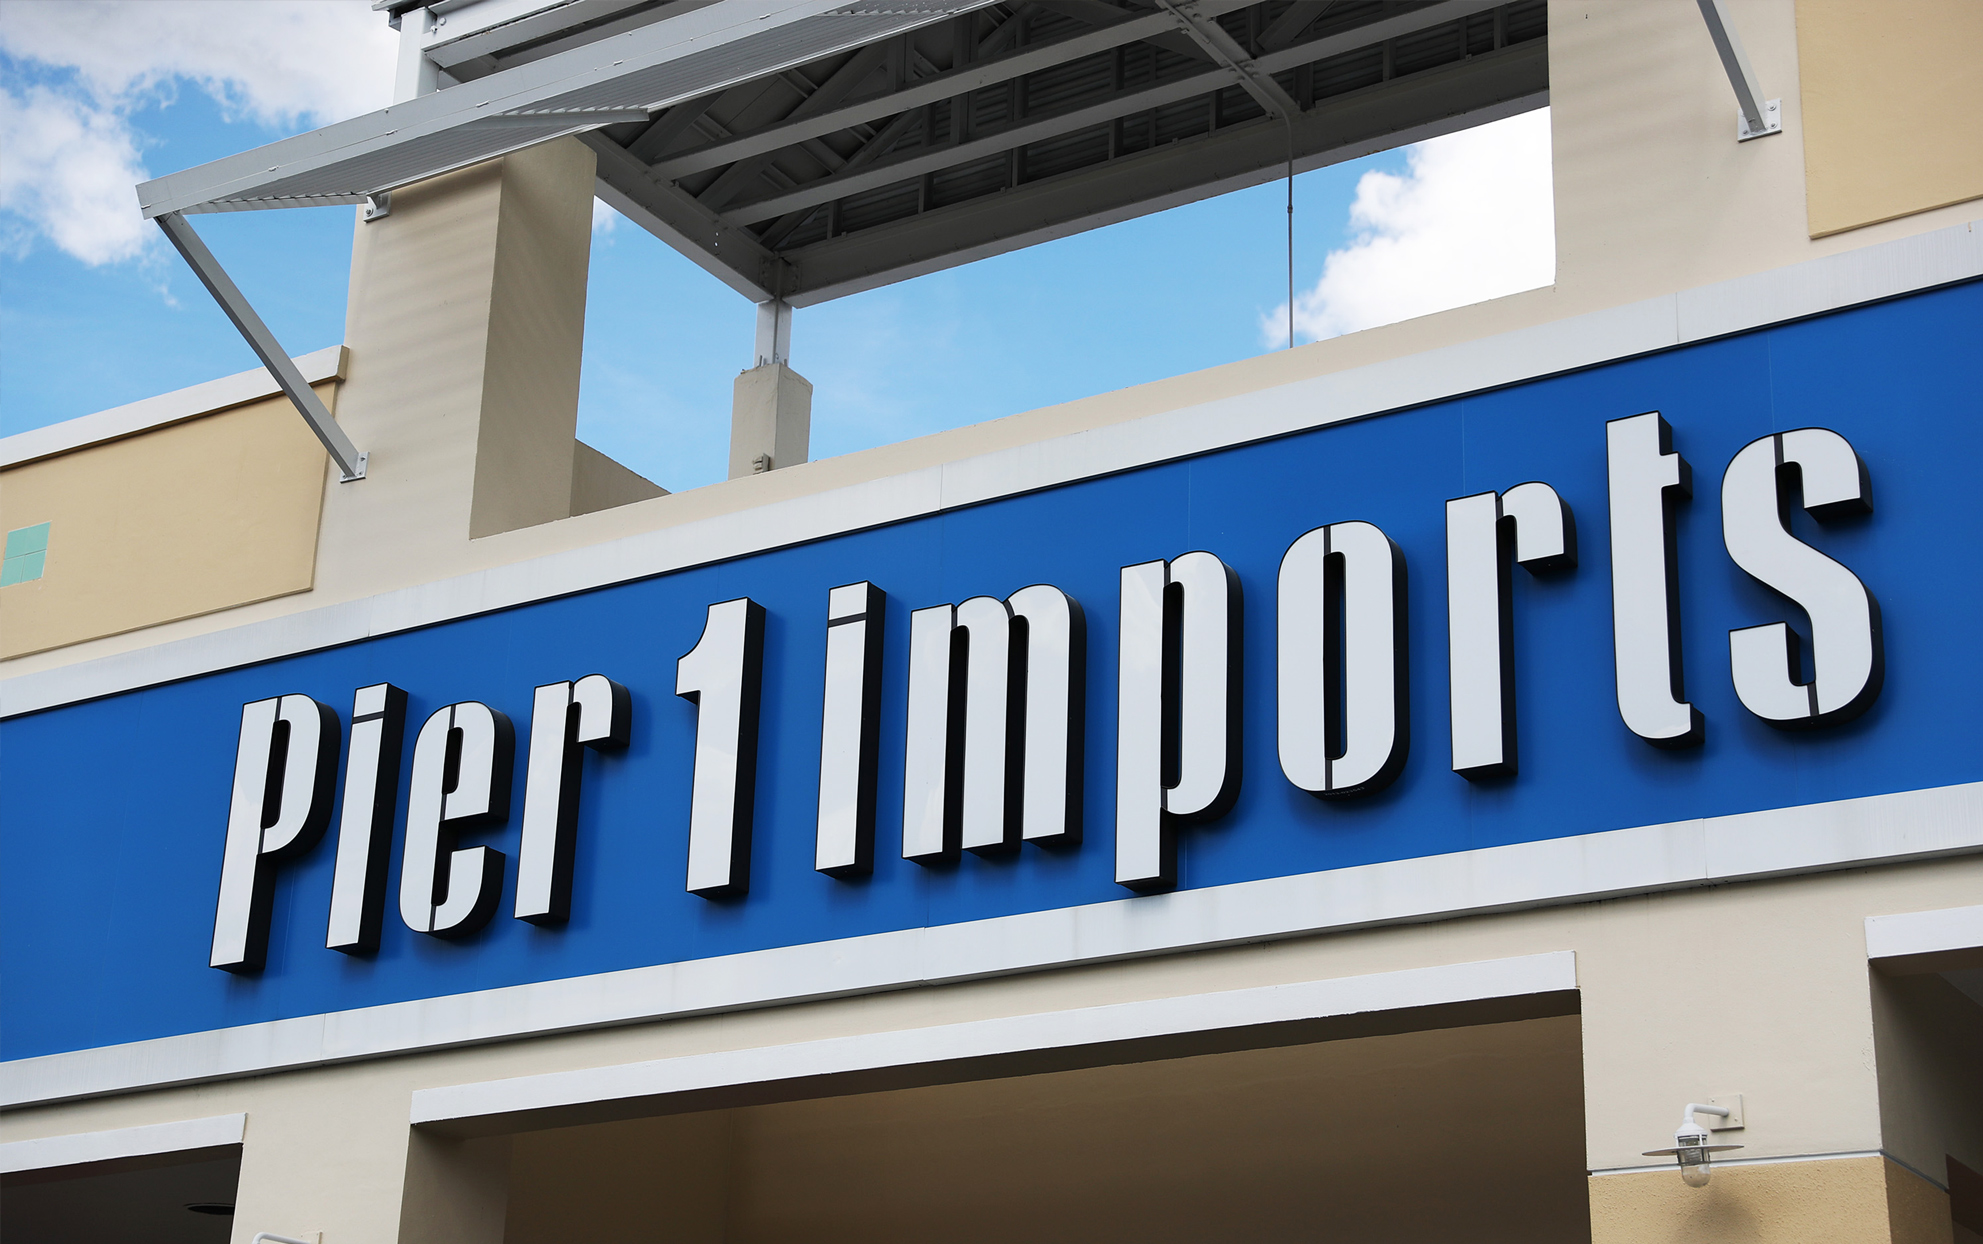 Pier 1 Imports store front sign